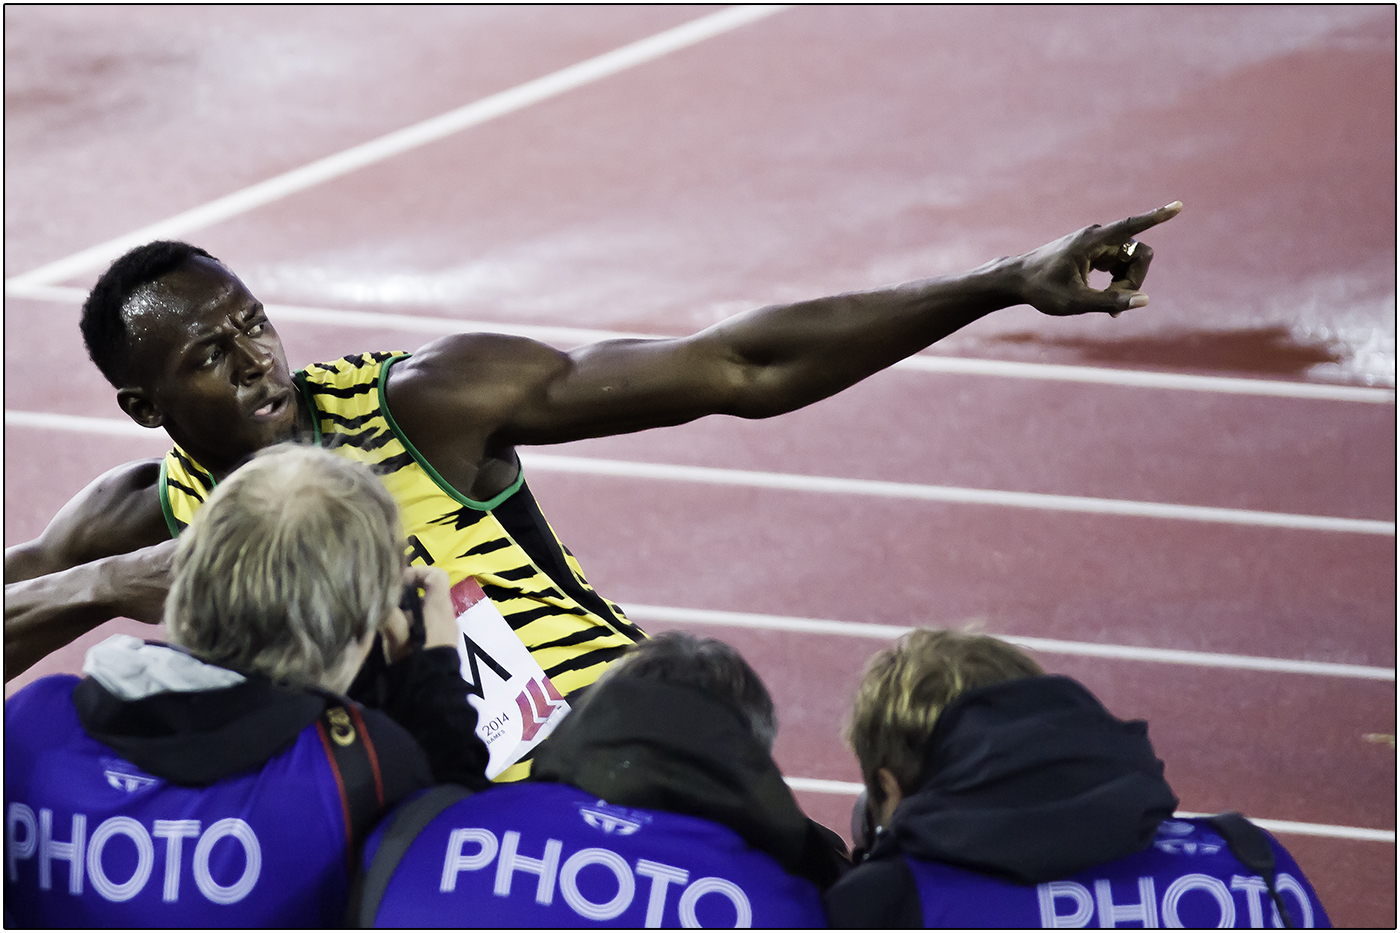 USAIN BOLT IS D MAN by Andy Smith